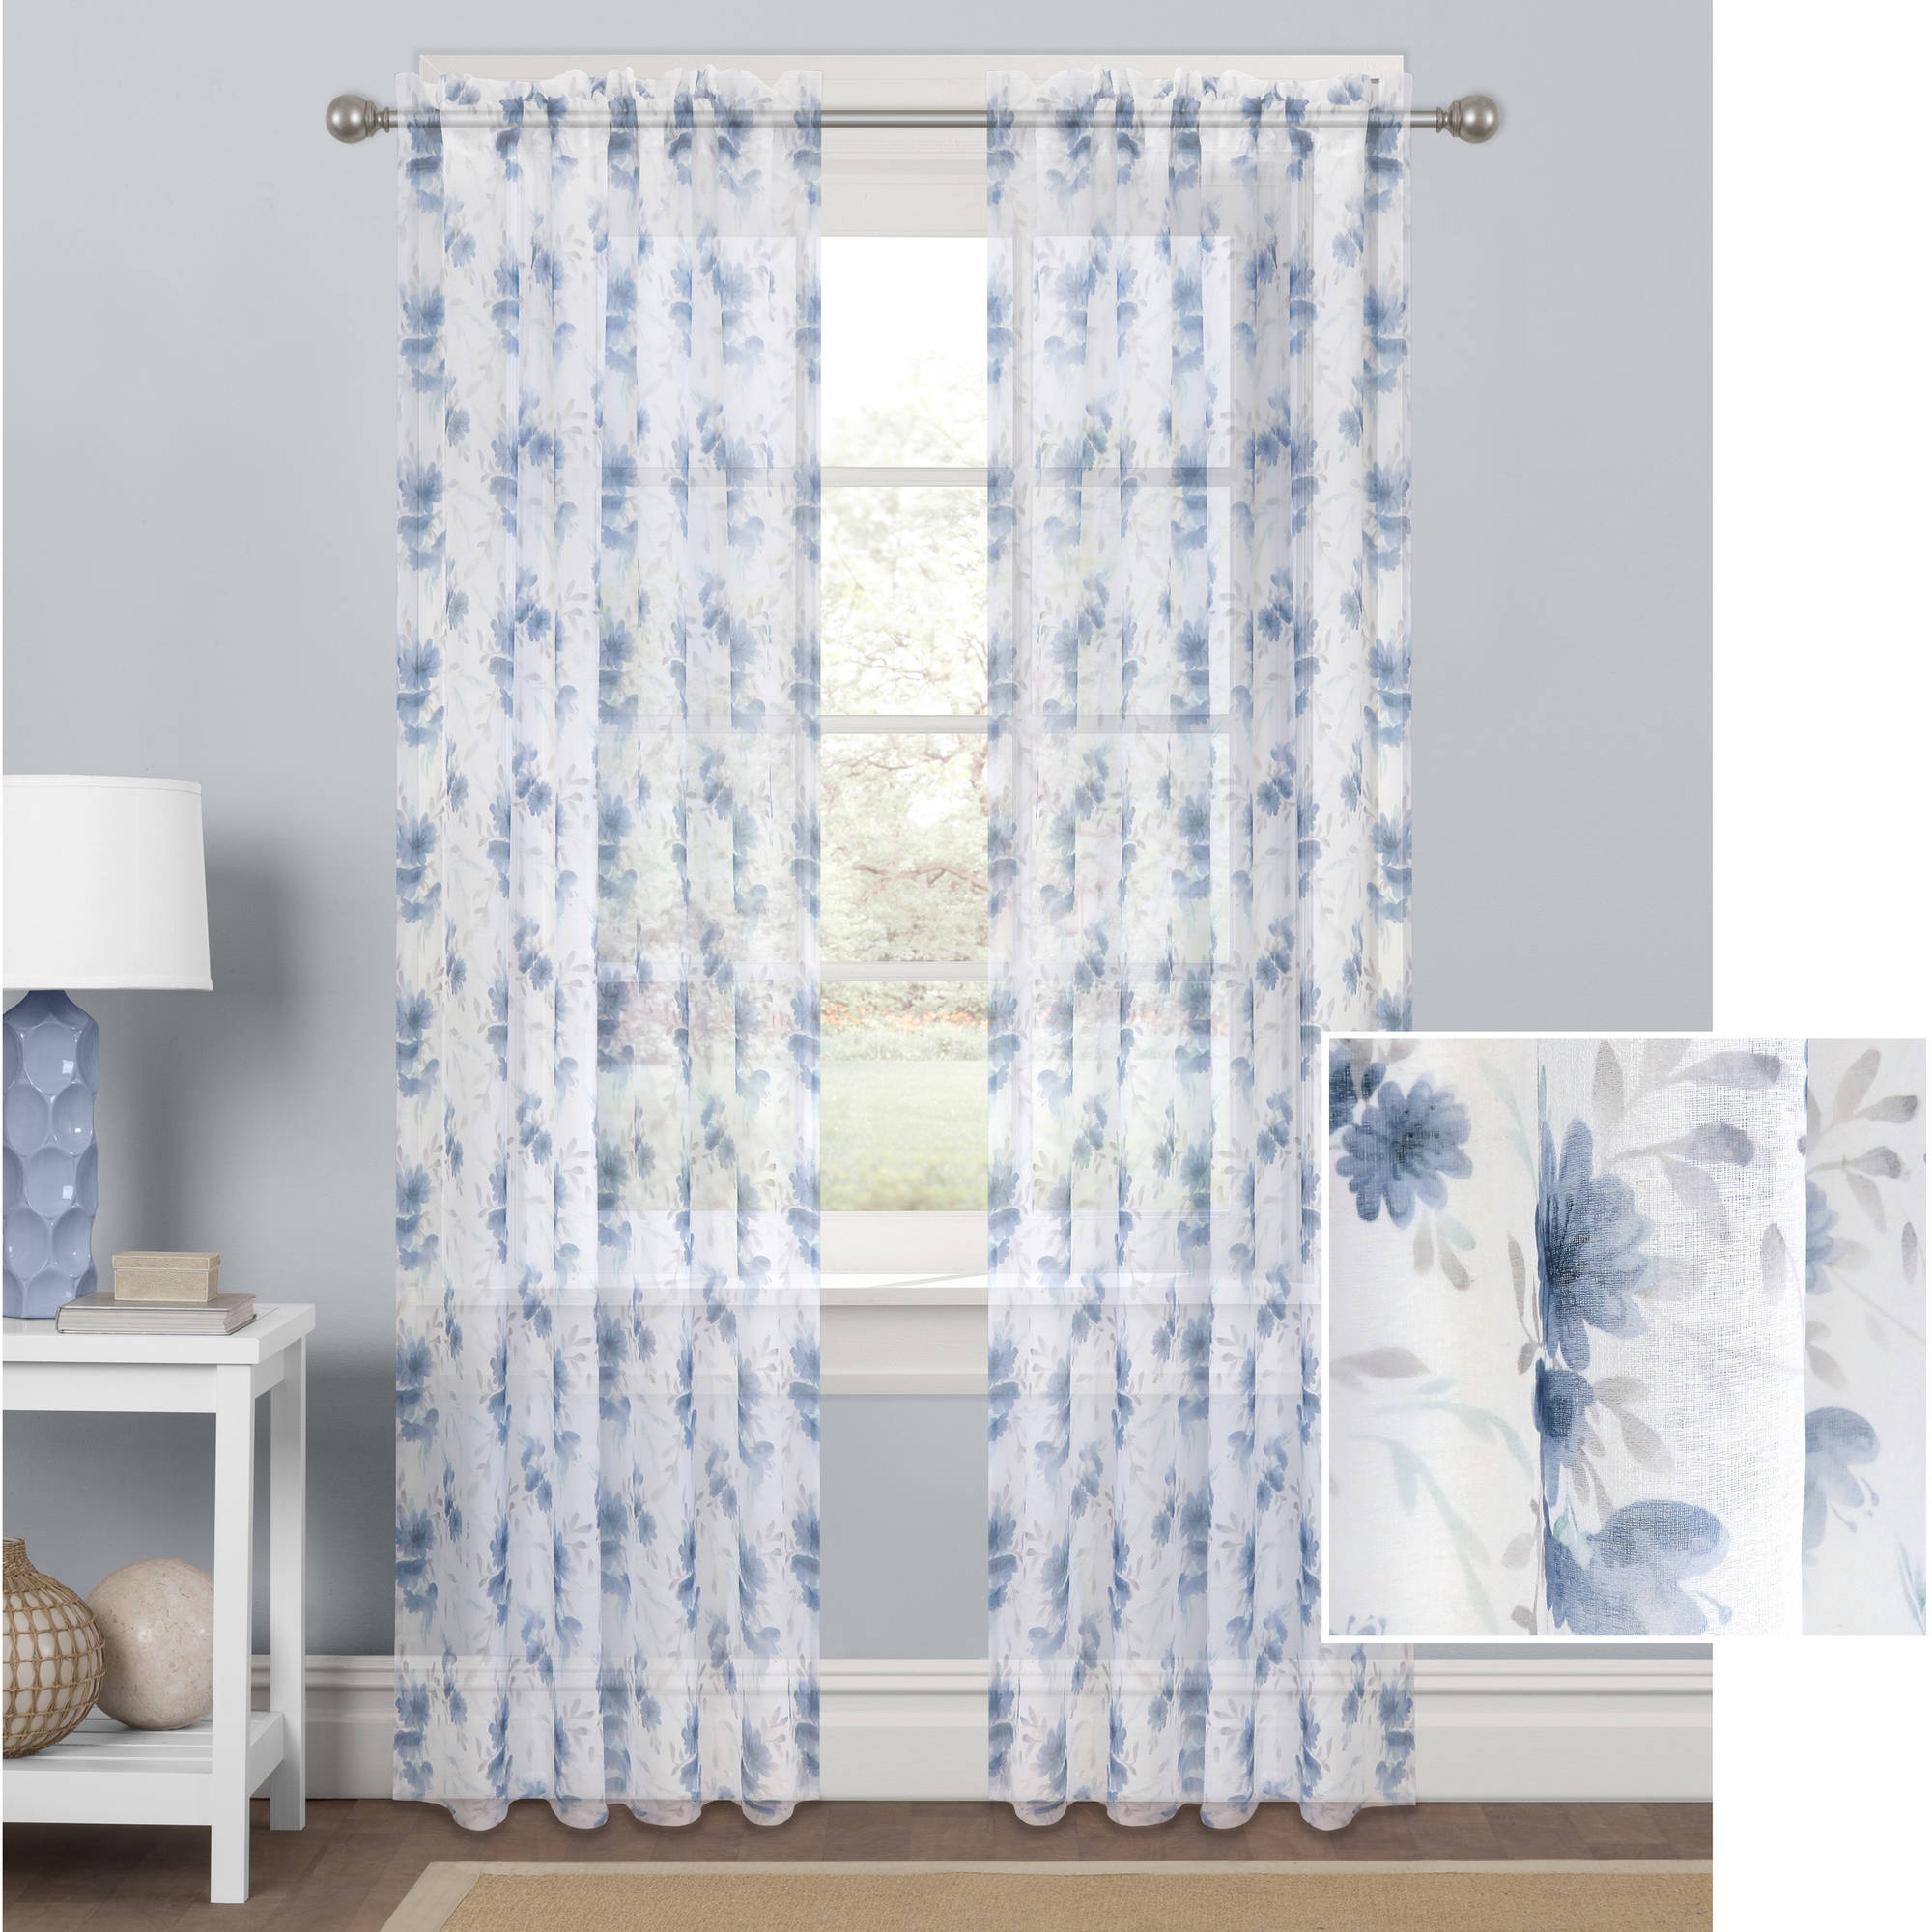 Better Homes and Gardens Watercolor Mums Sheer Curtain Panel by Colordrift LLC